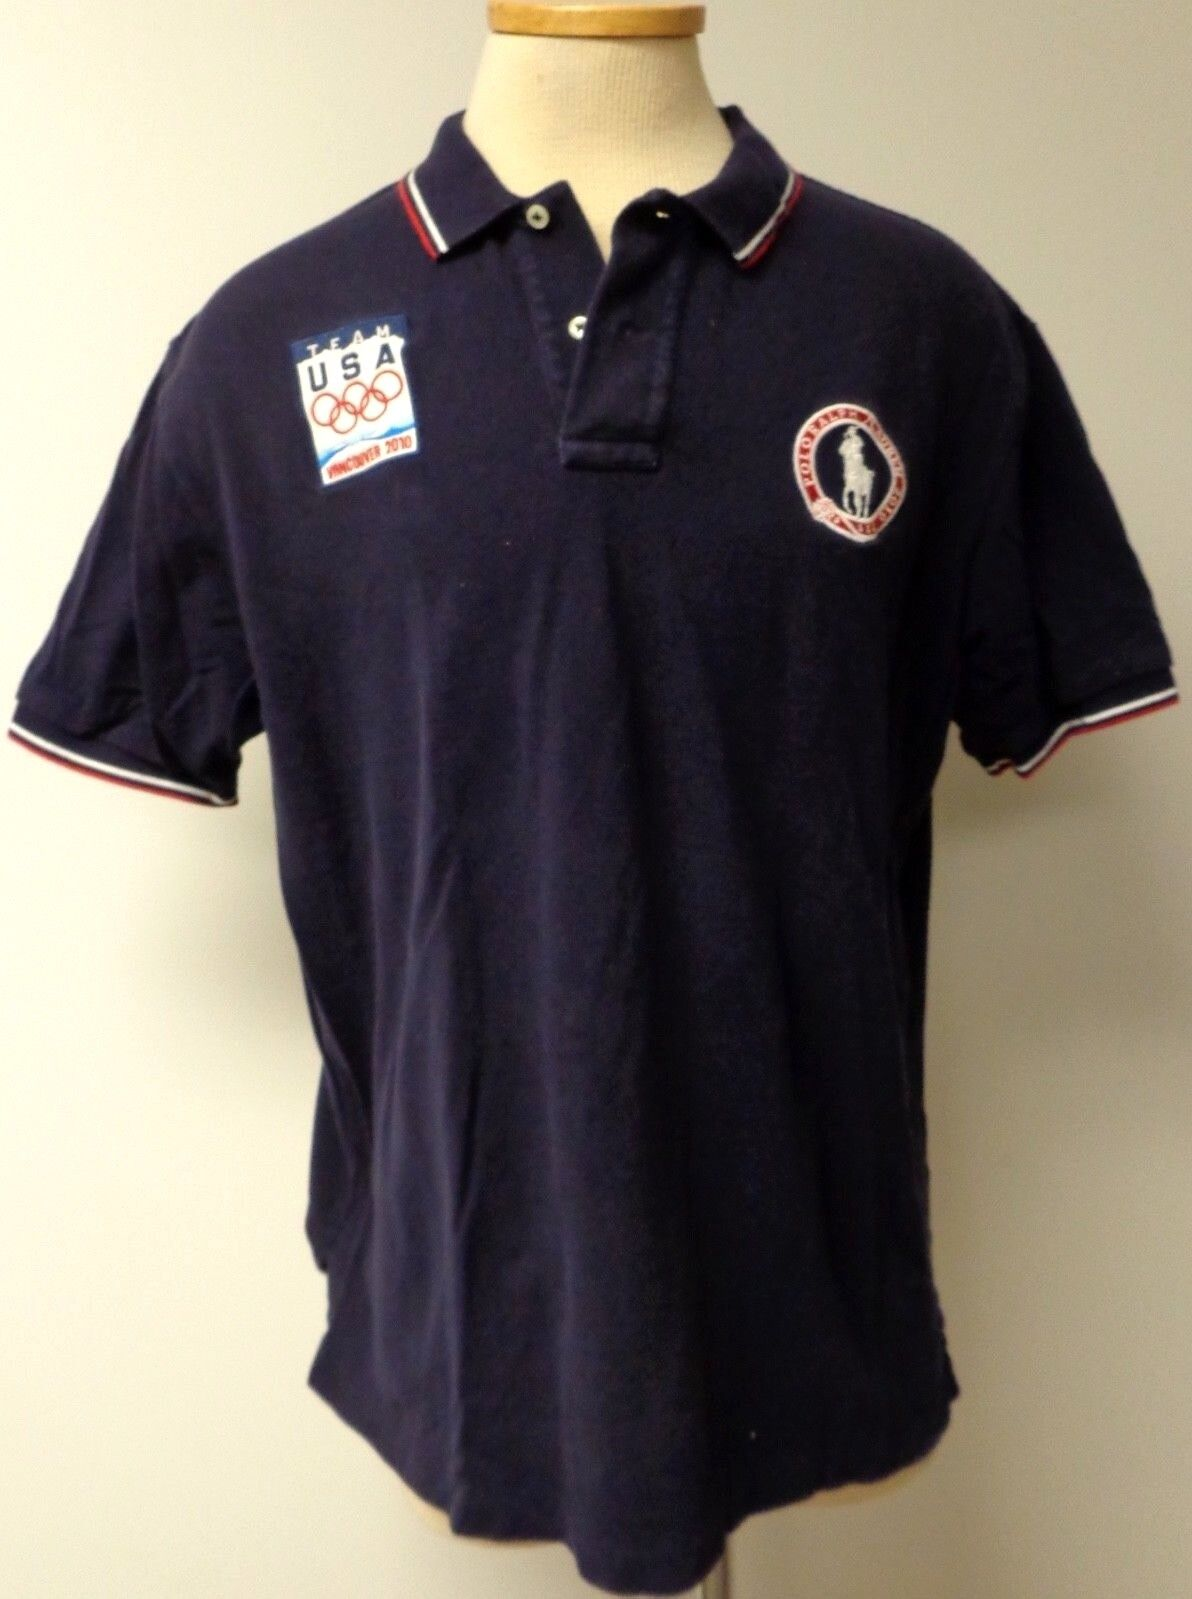 POLO RALPH LAUREN TEAM USA NAVY blueE POLO SHIRT 2010 VANCOUVER OLYMPICS PATCH XL